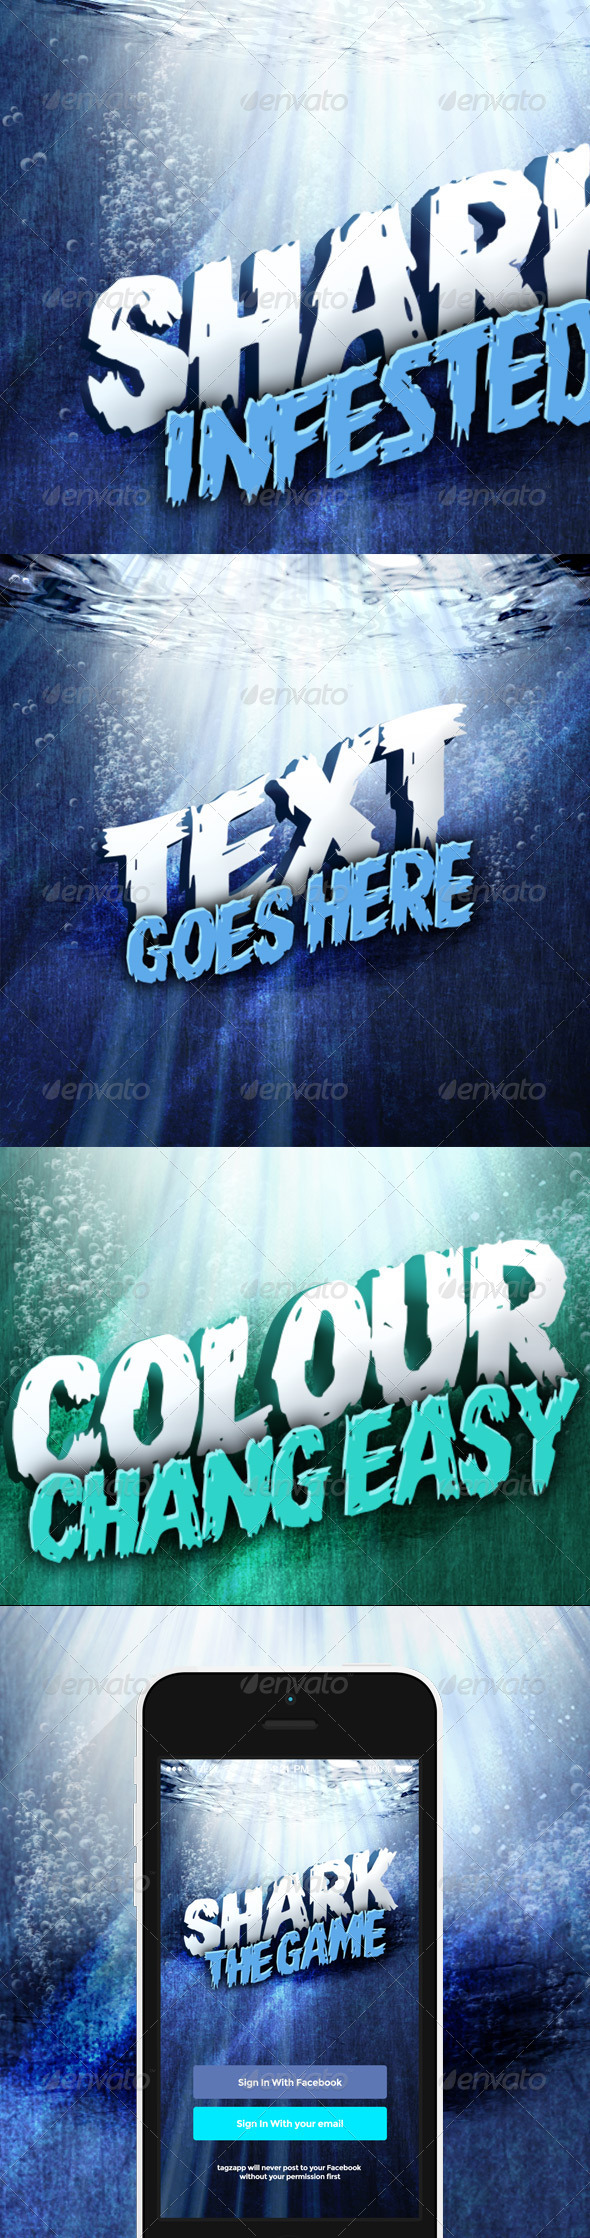 GraphicRiver 3D Underwater Text Mockup 6724278